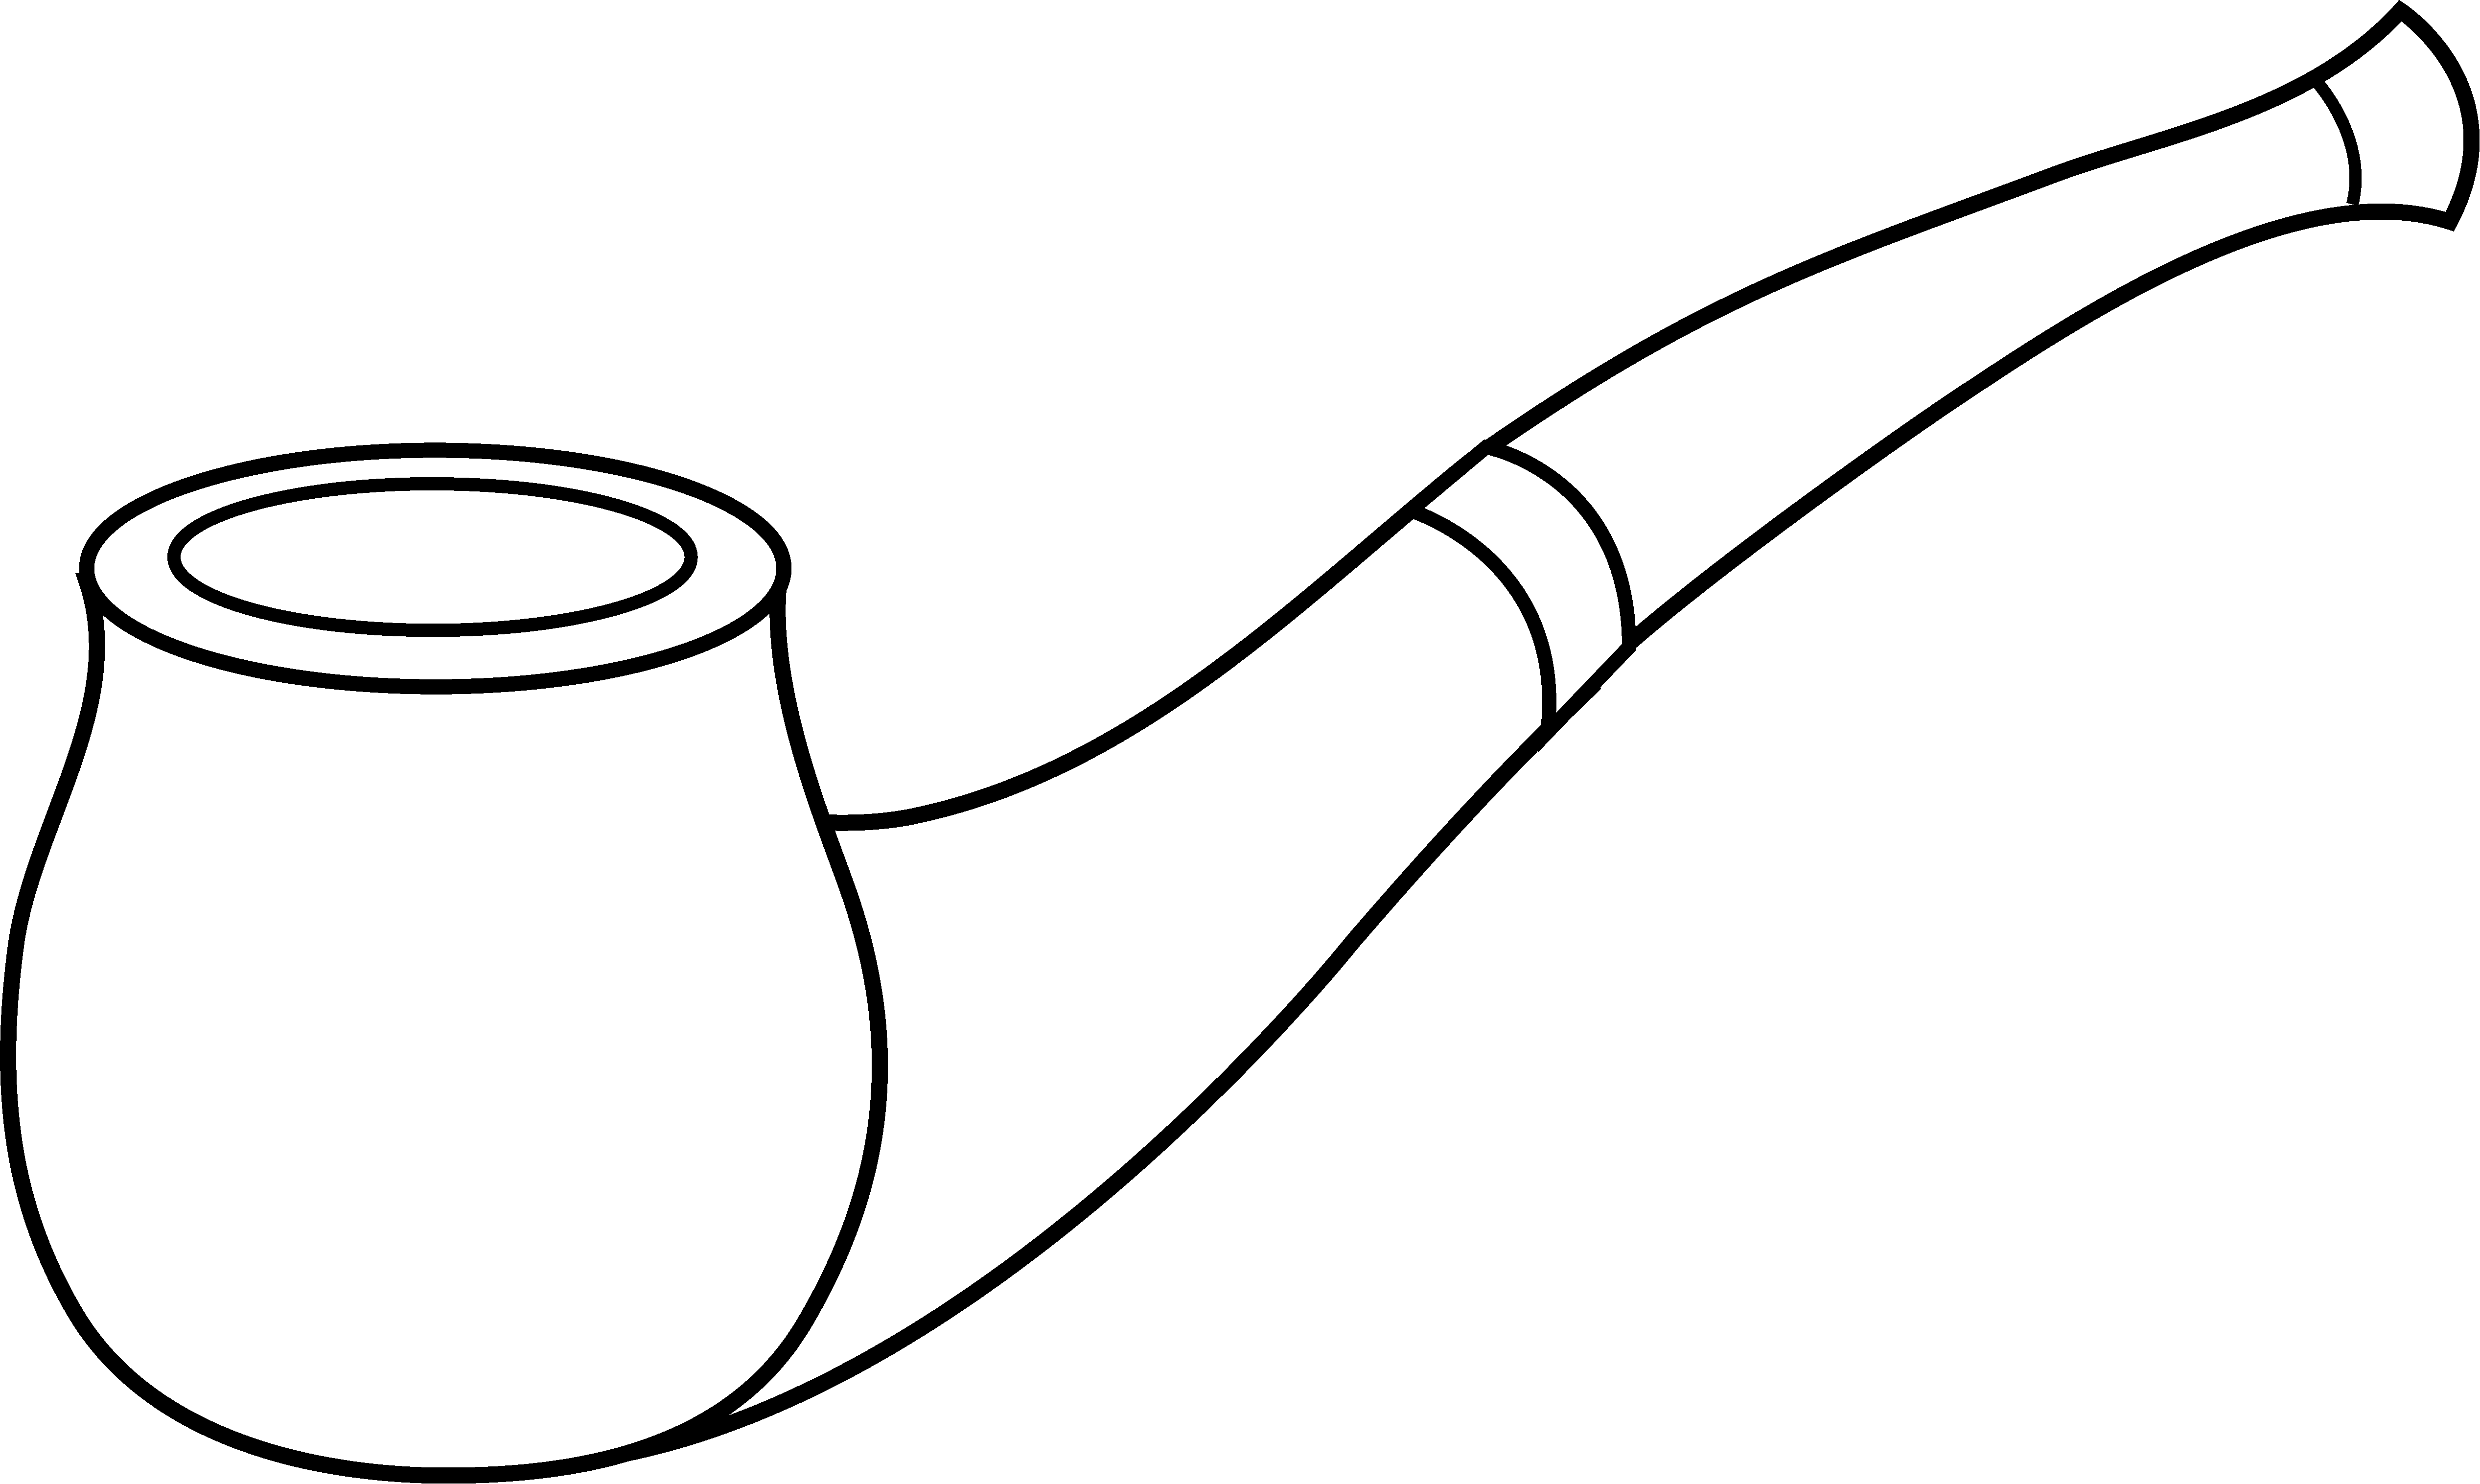 pin Tobacco clipart smoking pipe #2 - Black Tobacco Pipe PNG